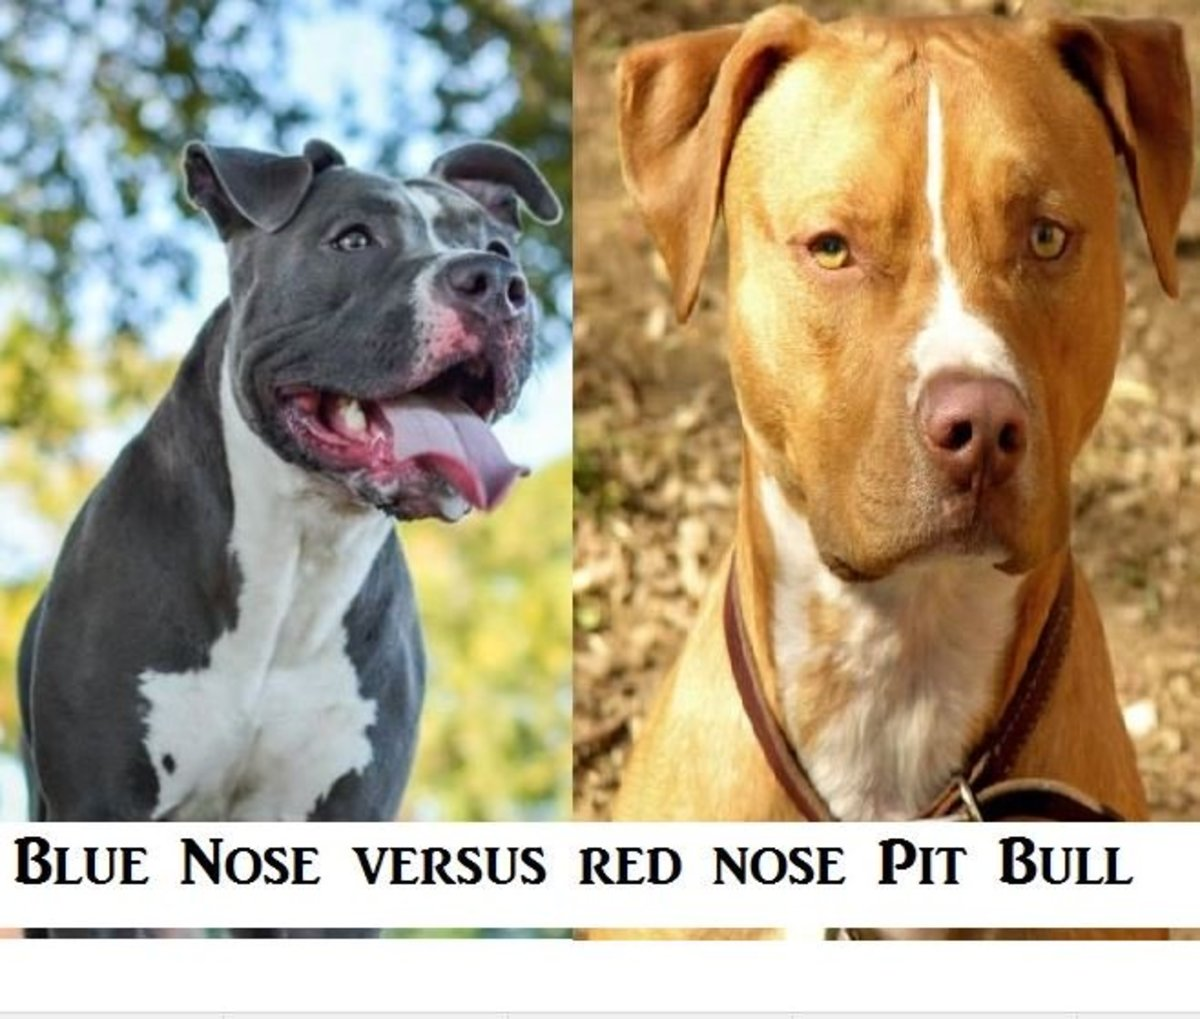 Facts About Blue Nose And Red Nose Pit Bulls Pethelpful By Fellow Animal Lovers And Experts